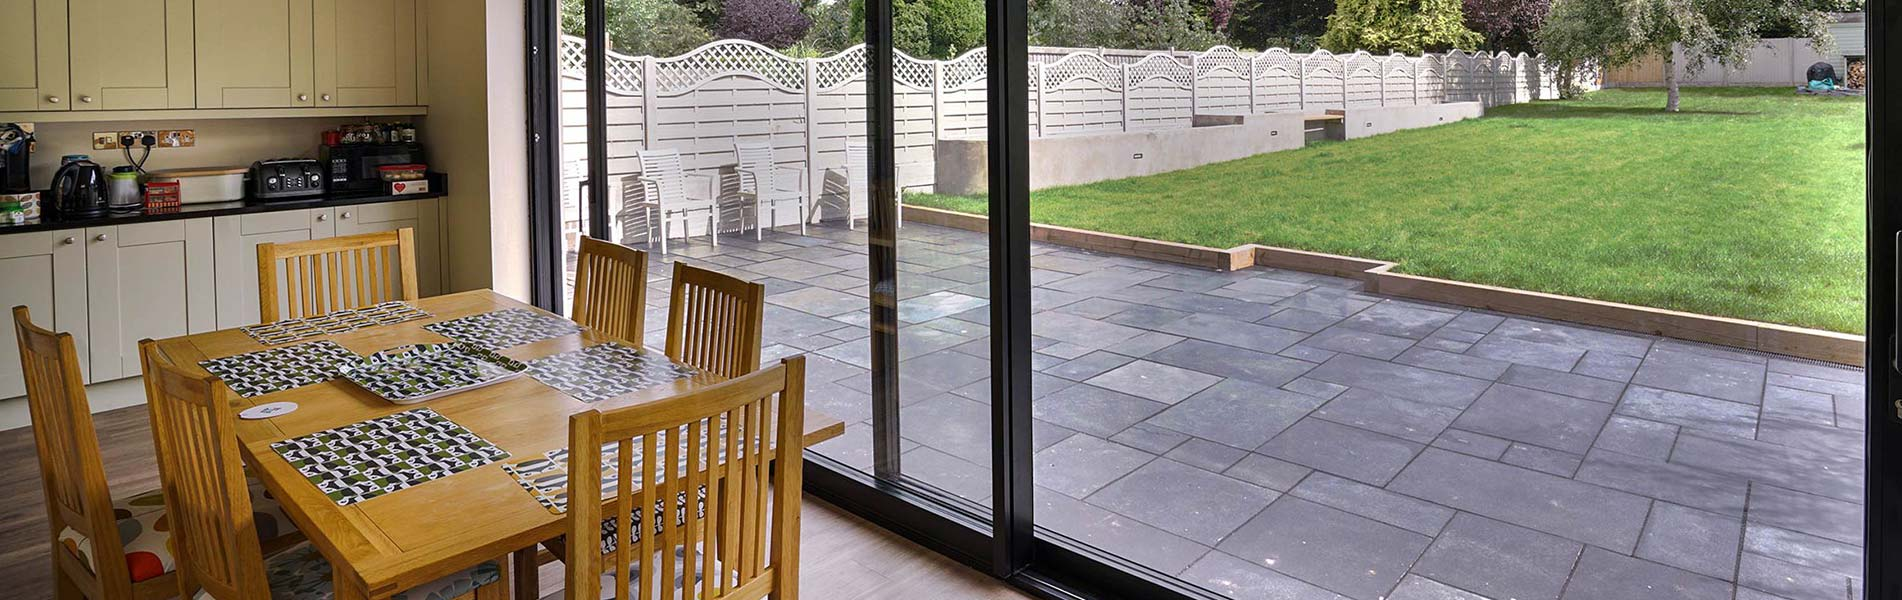 Sliding Glass Door Repair Service For Fort Lauderdale  Florida